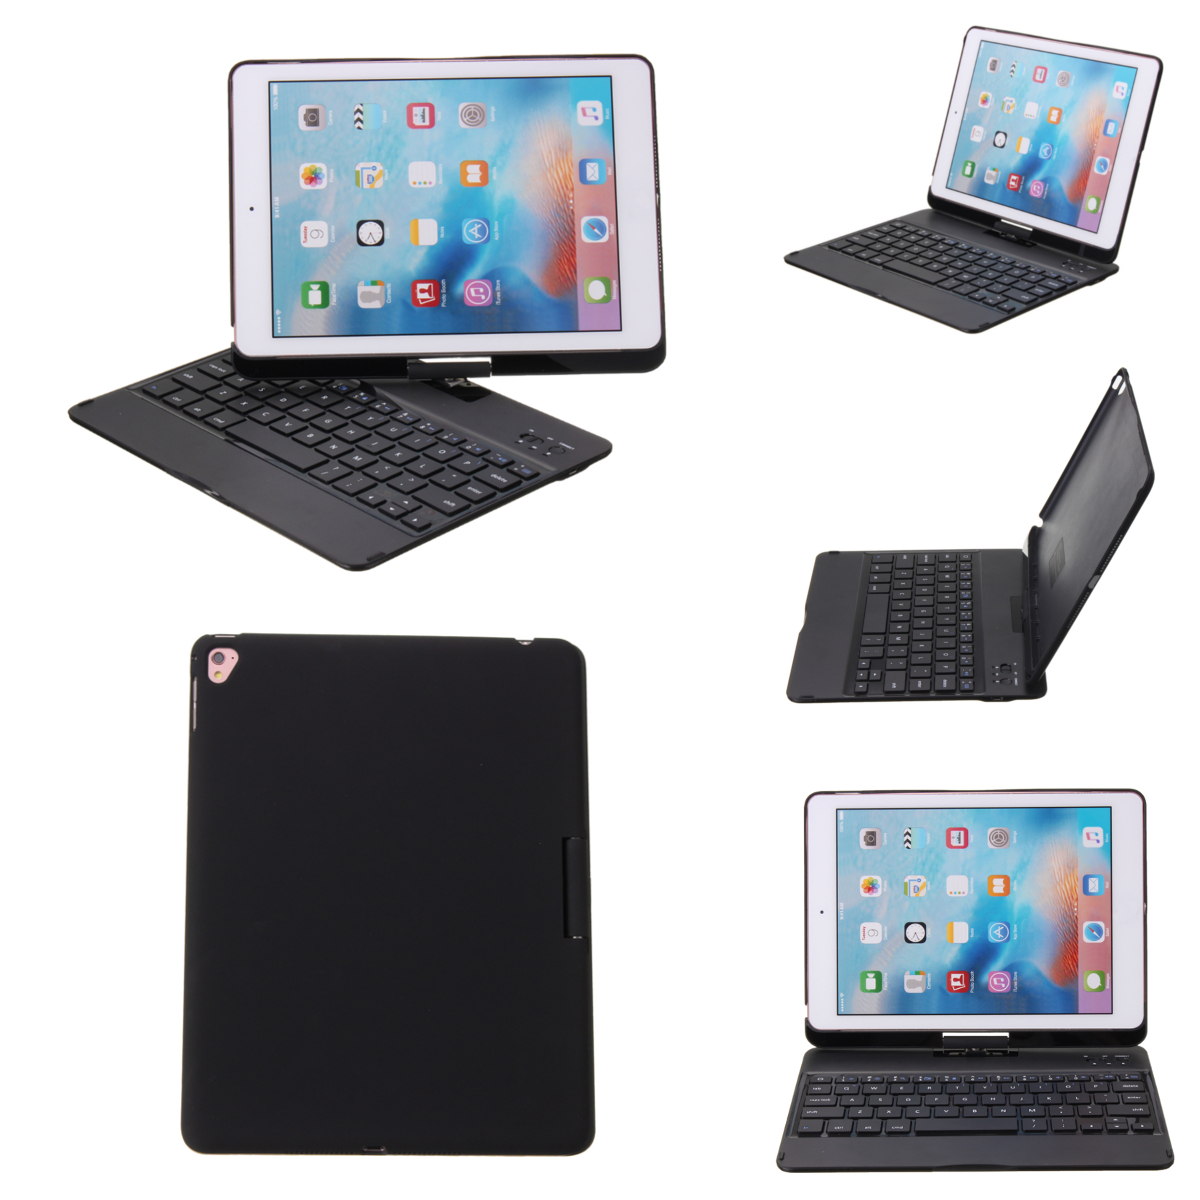 360° Rotation Ultra Thin bluetooth Keyboard Protective Cover Case for iPad Air 2